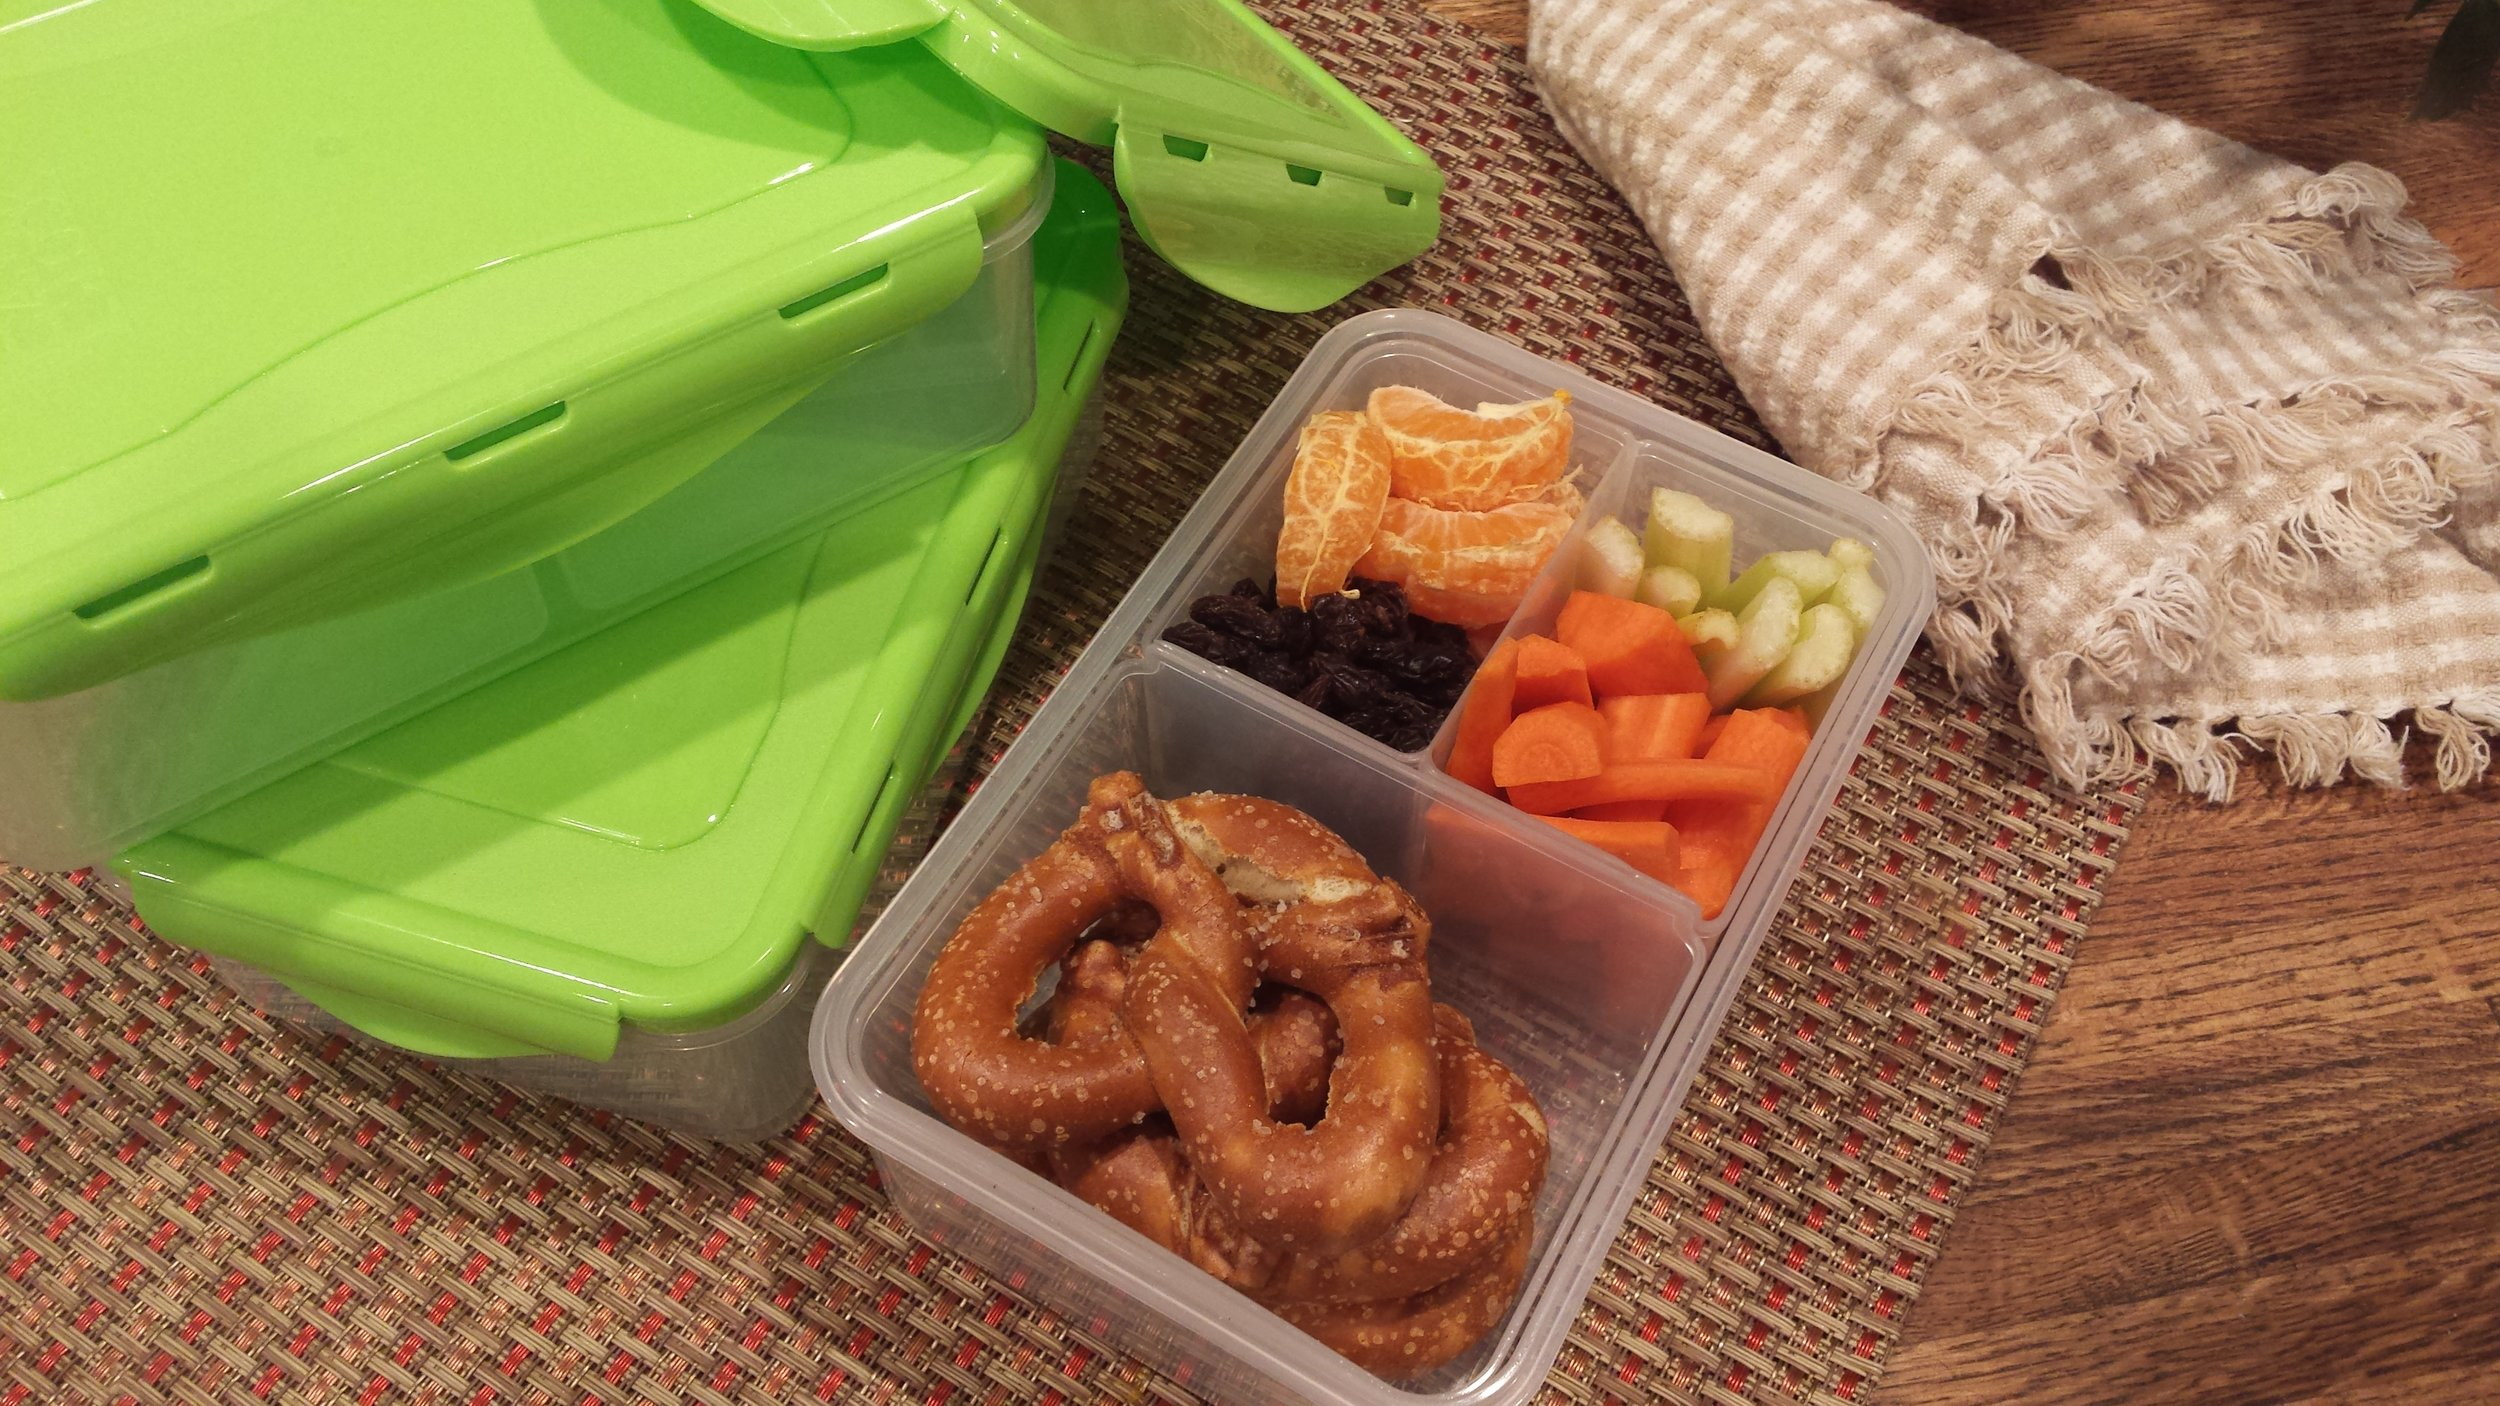 Bento box with removable sections